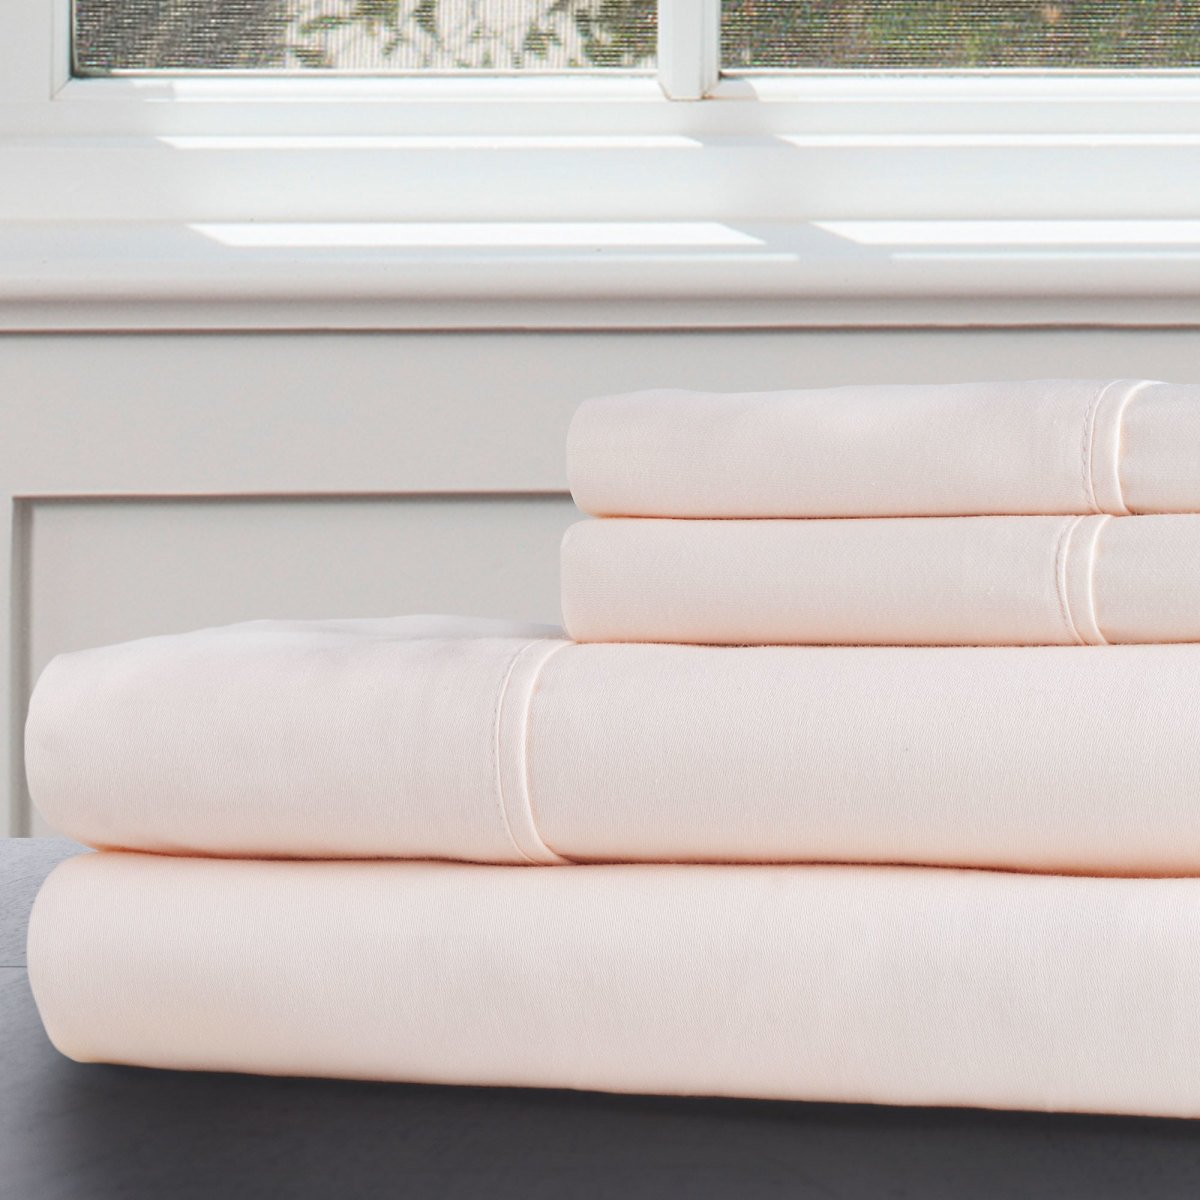 4pc 100% Cotton 300 Thread Count Bedding Sheet Set By Somerset Home